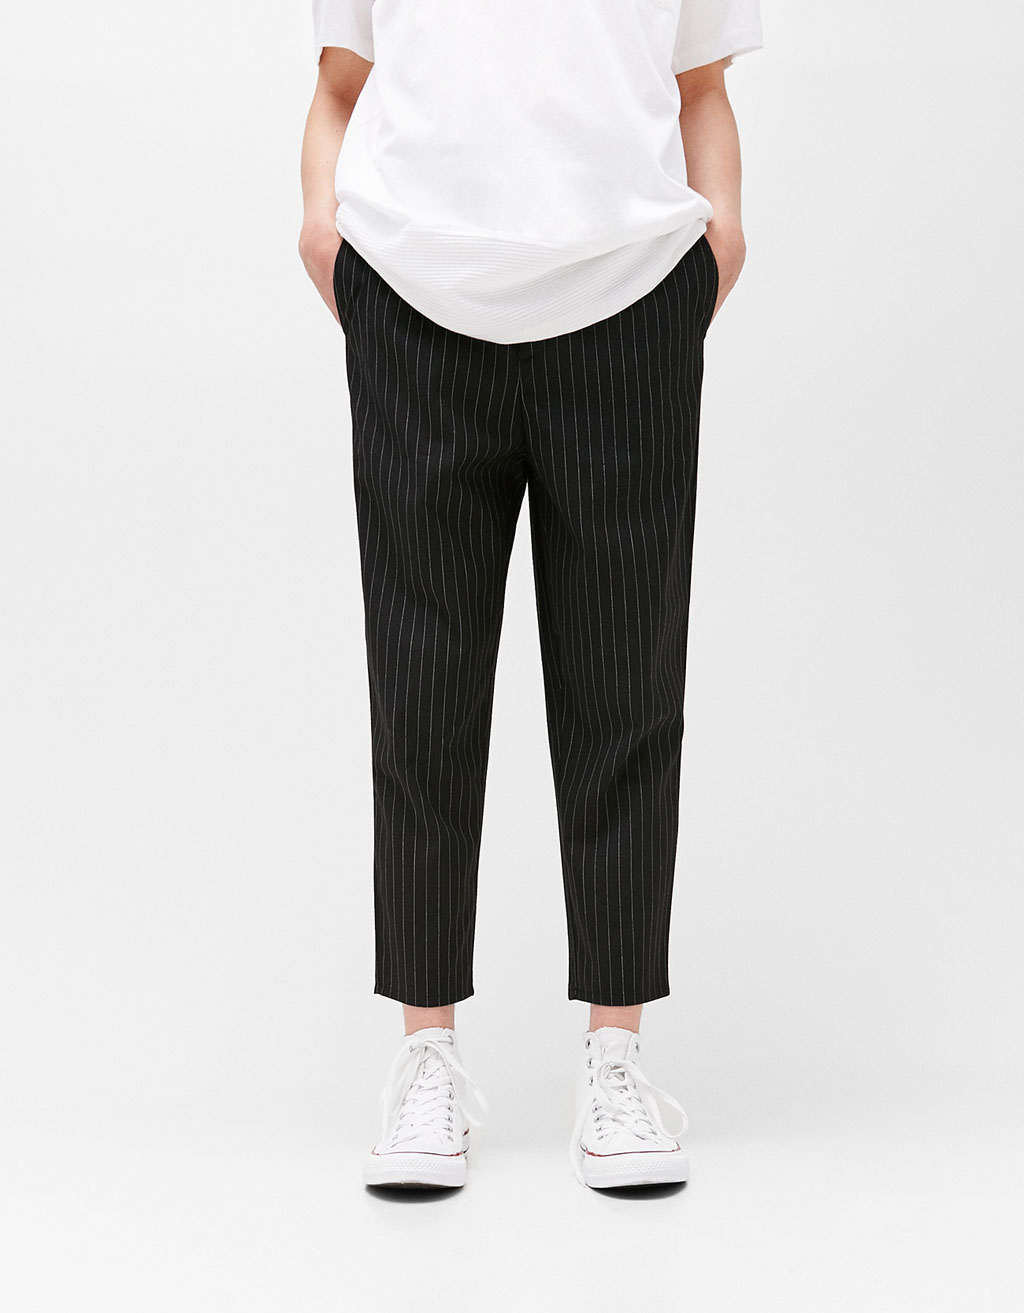 Pinstripe trousers with darts detail